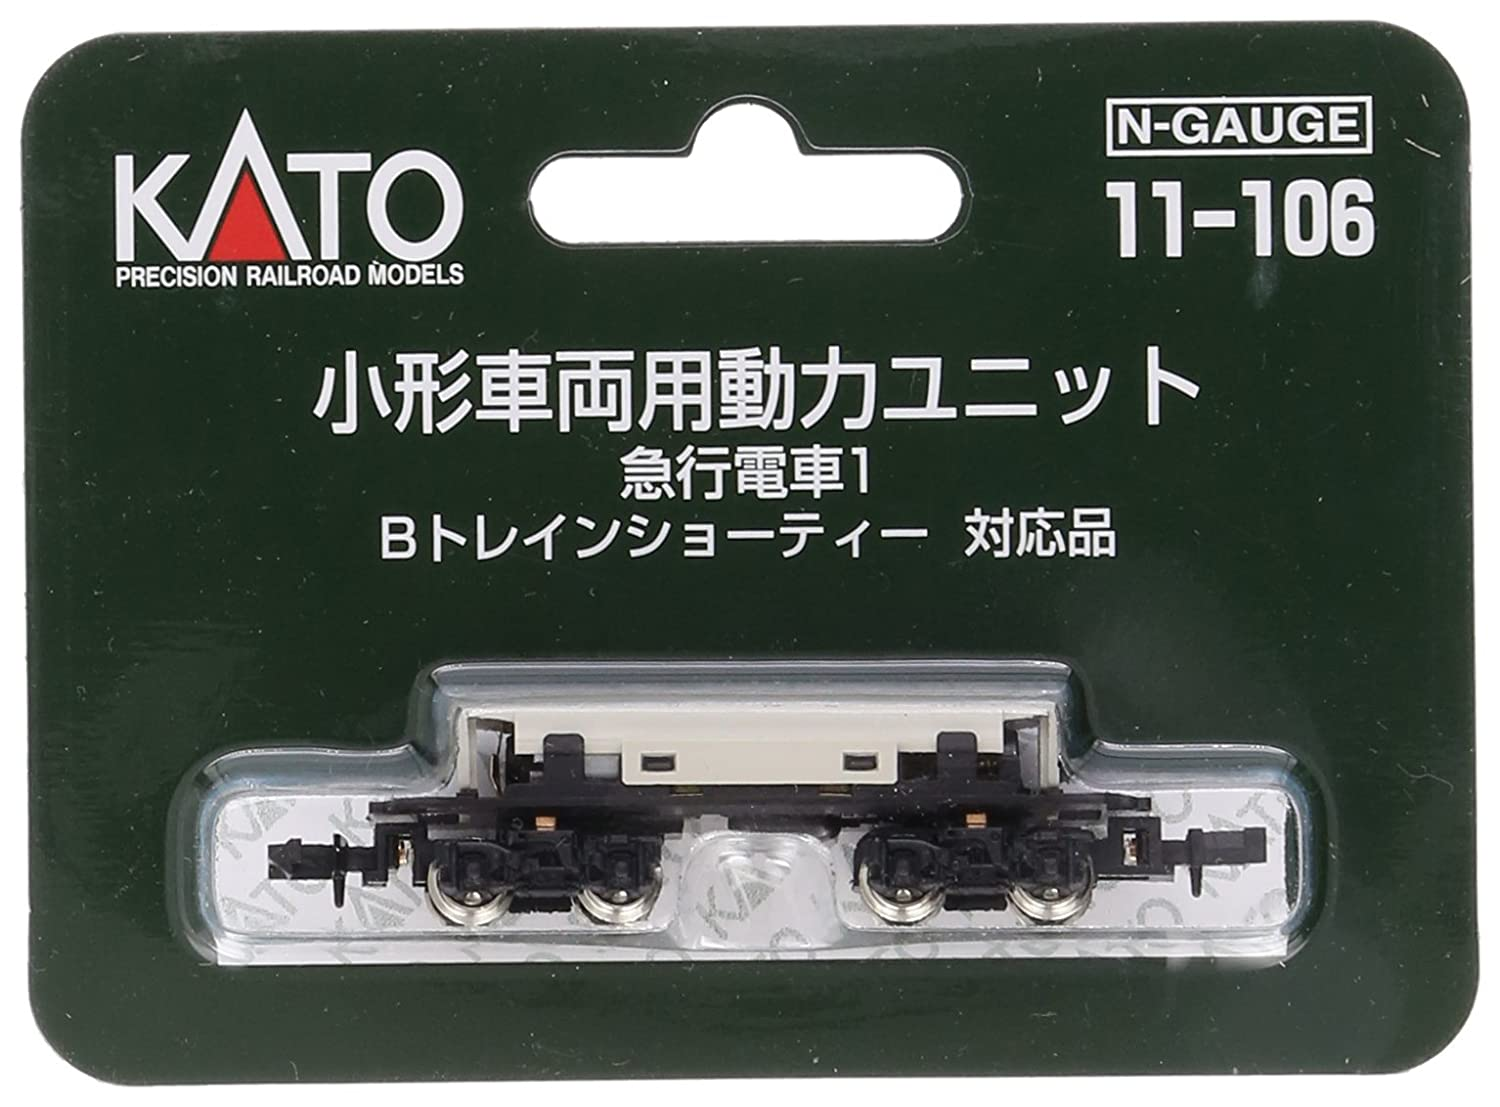 Powered Motorized Chassis KATO 11-106 (japan import)